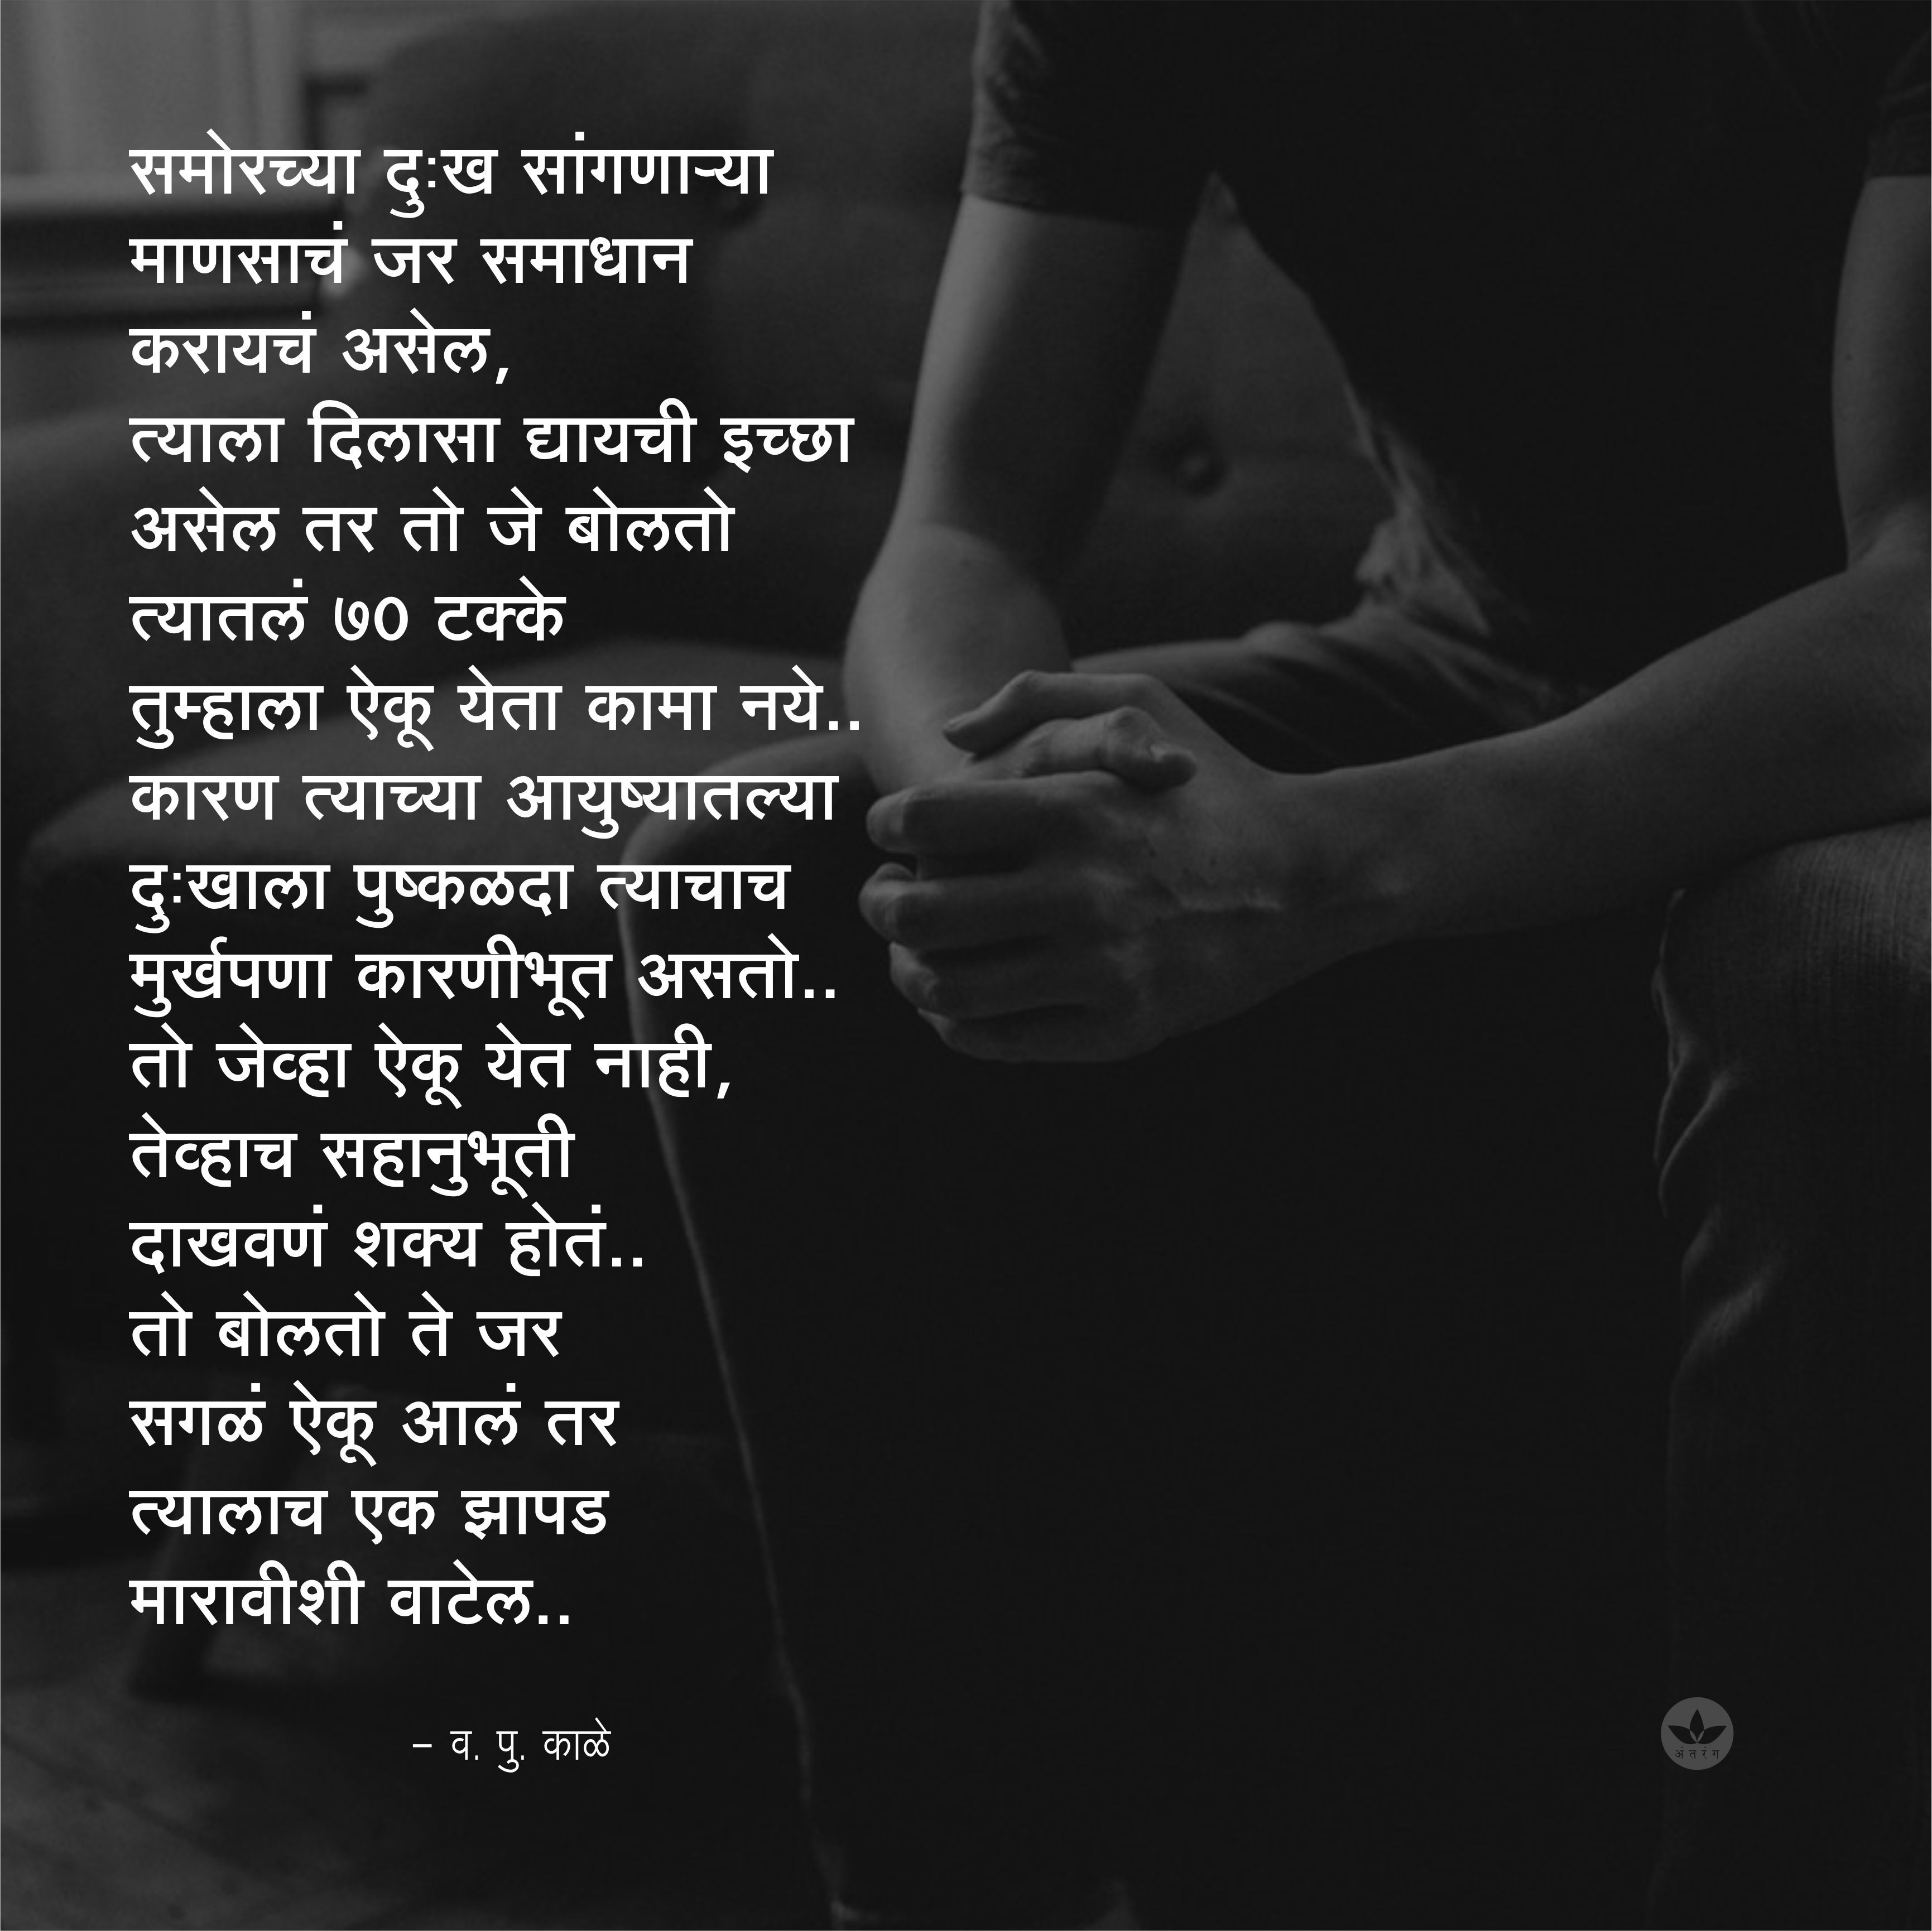 Marathi Quotes Sms Quotes Sms In Marathi Quotes Messages Page 1 Affirmation Quotes Marathi Quotes Positive Quotes